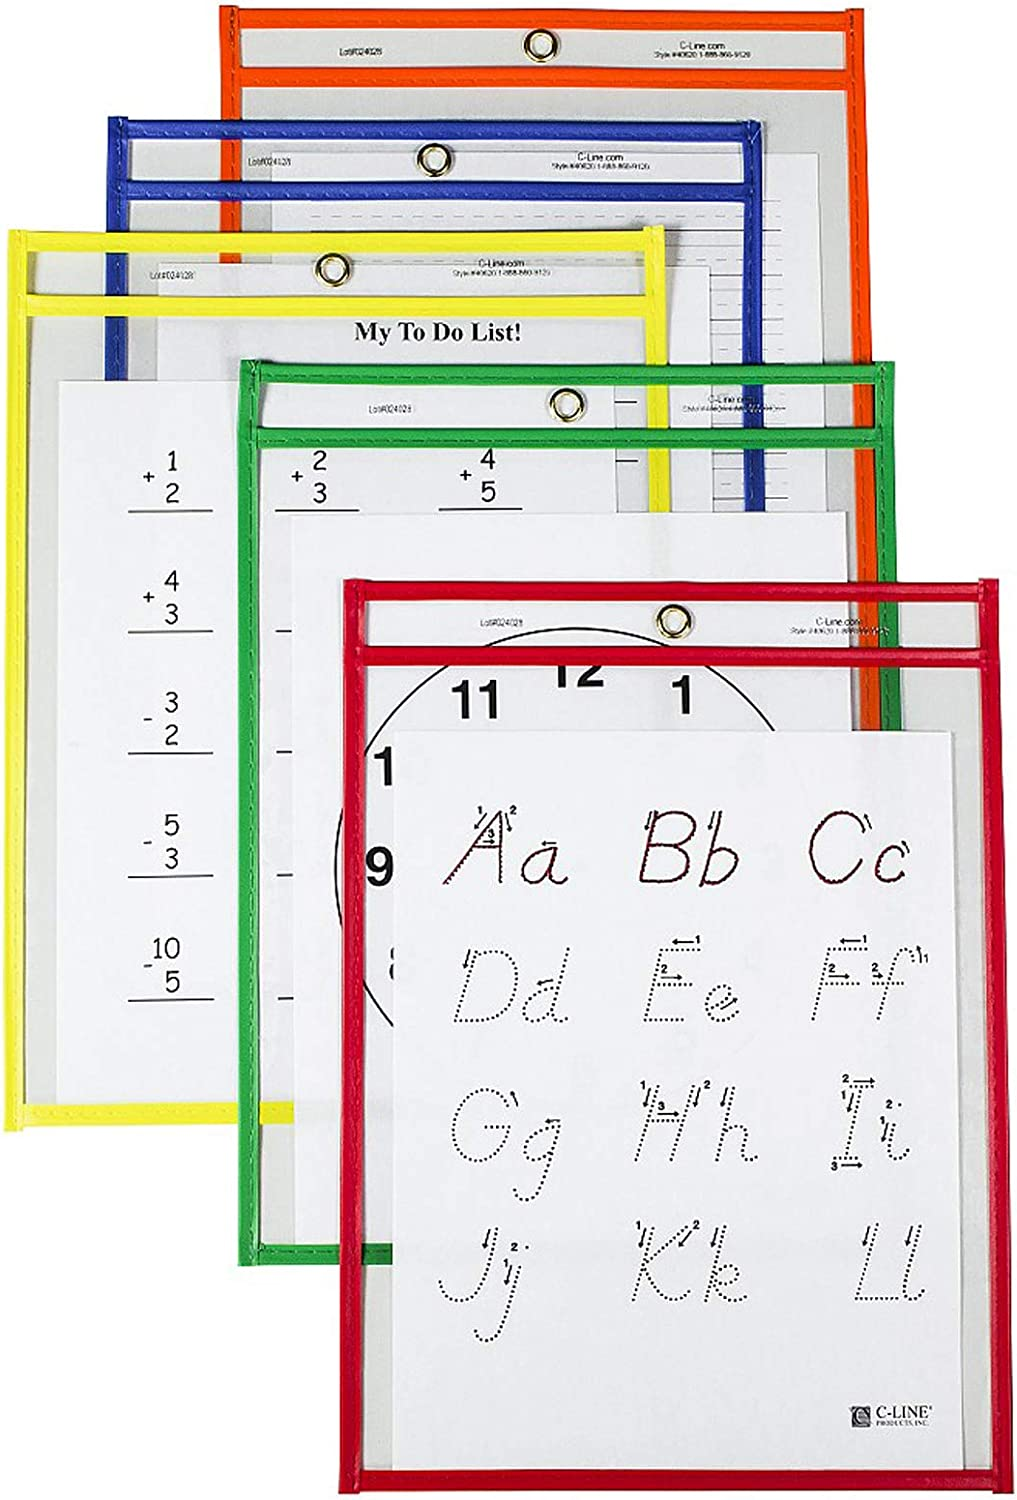 C-Line Reusable Dry Erase Pockets, 9 x 12 Inches, Assorted Primary Colors, 25 Pockets per Pack (40620)